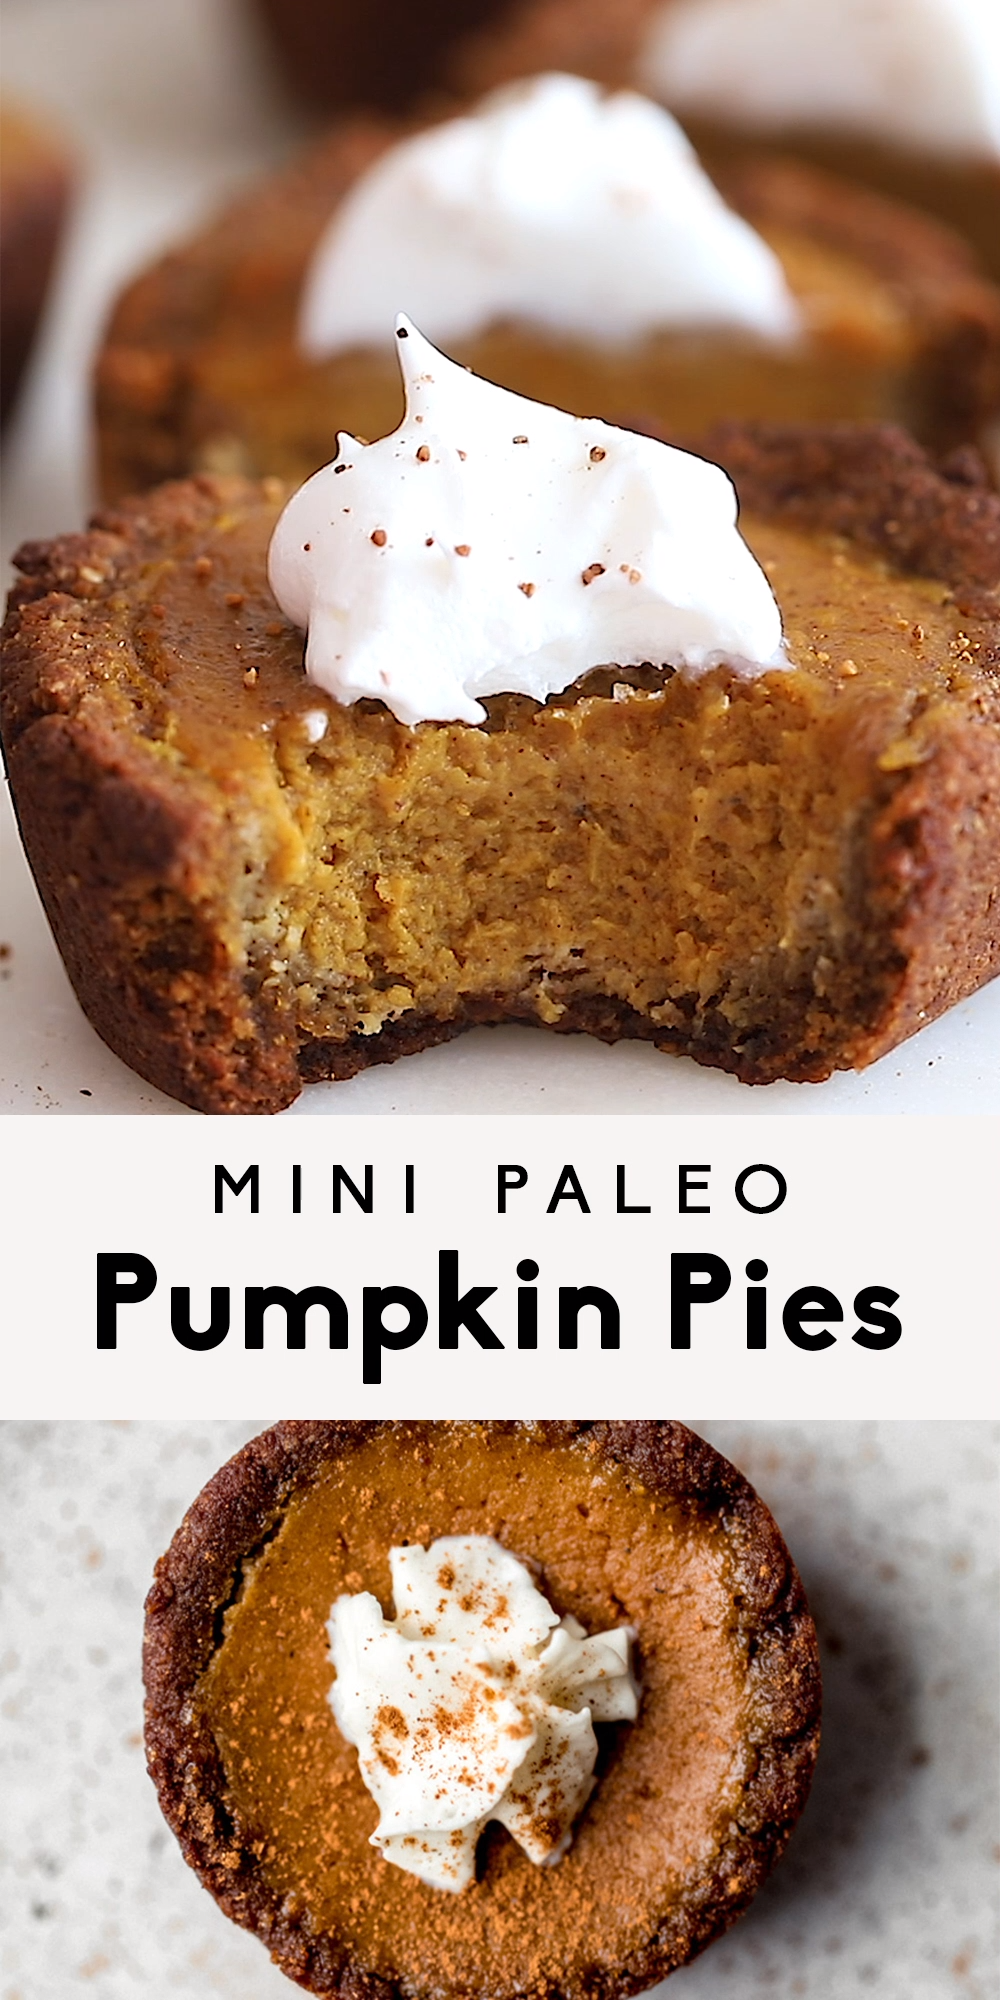 Adorable paleo healthy mini pumpkin pies with gingerbread cookie crust. These gluten free and dairy free mini pumpkin pies are naturally sweetened, super cute and seriously delicious! Perfect for the holiday season. #pumpkinpie #pumpkinrecipes #thanksgiving #paleo #paleodessert #glutenfree #glutenfreedessert